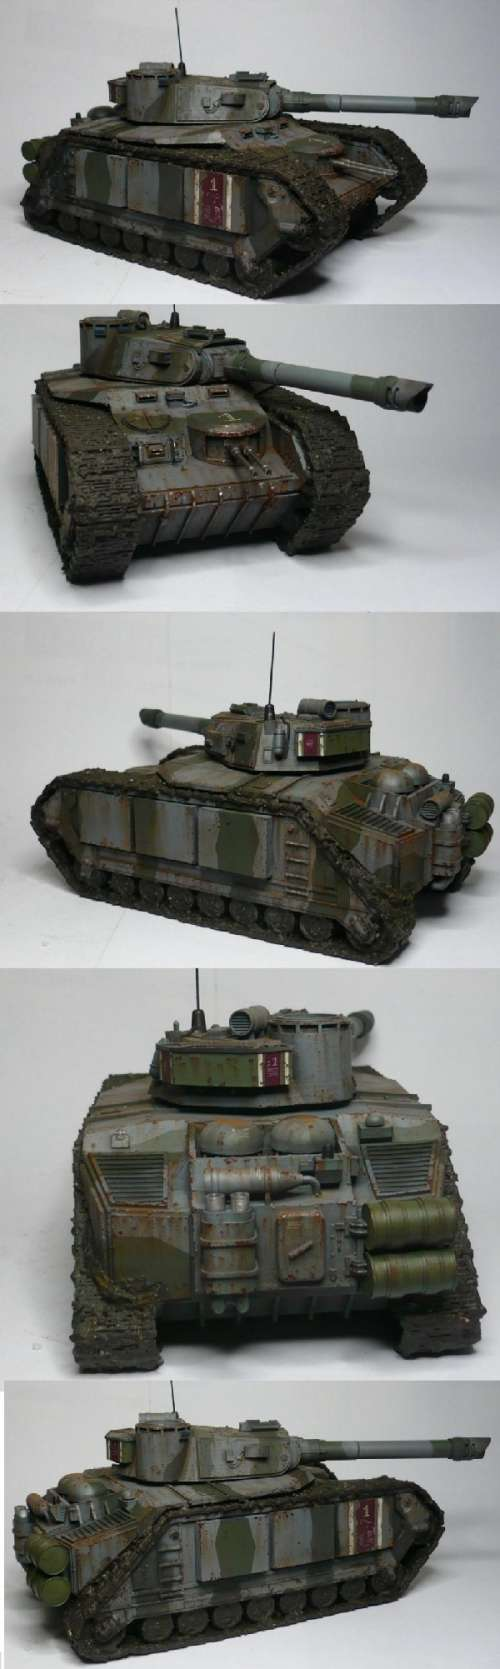 heavy battle tank - photo #26